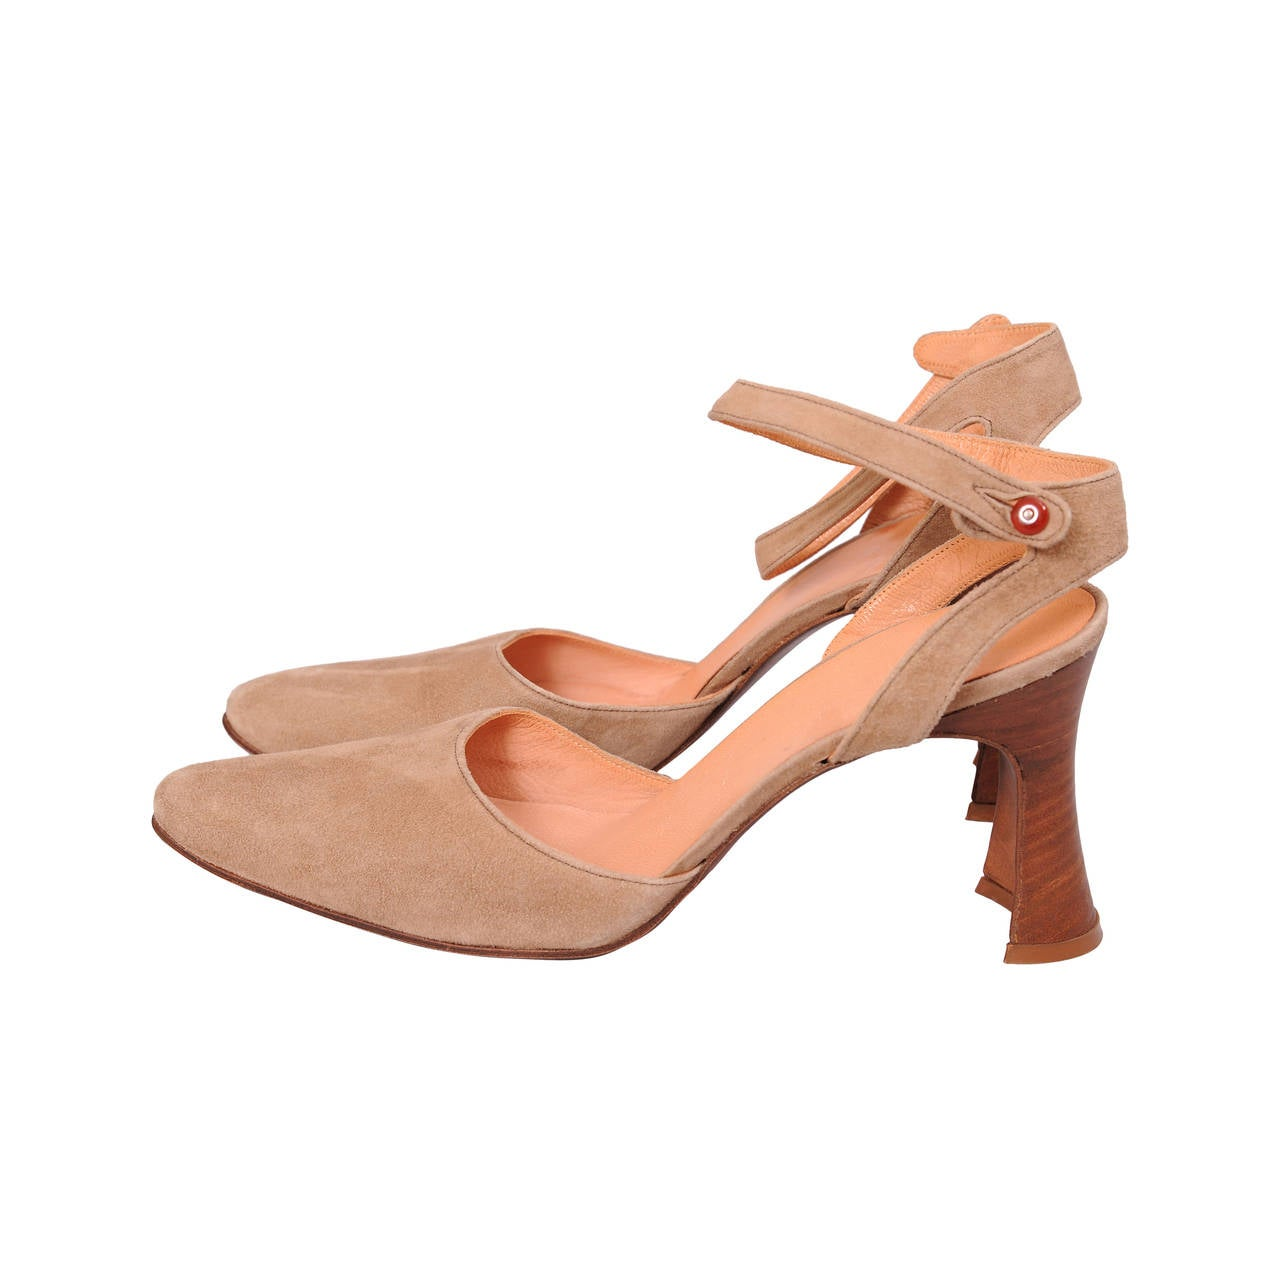 Chloe Taupe Suede Heels, Never Worn For Sale